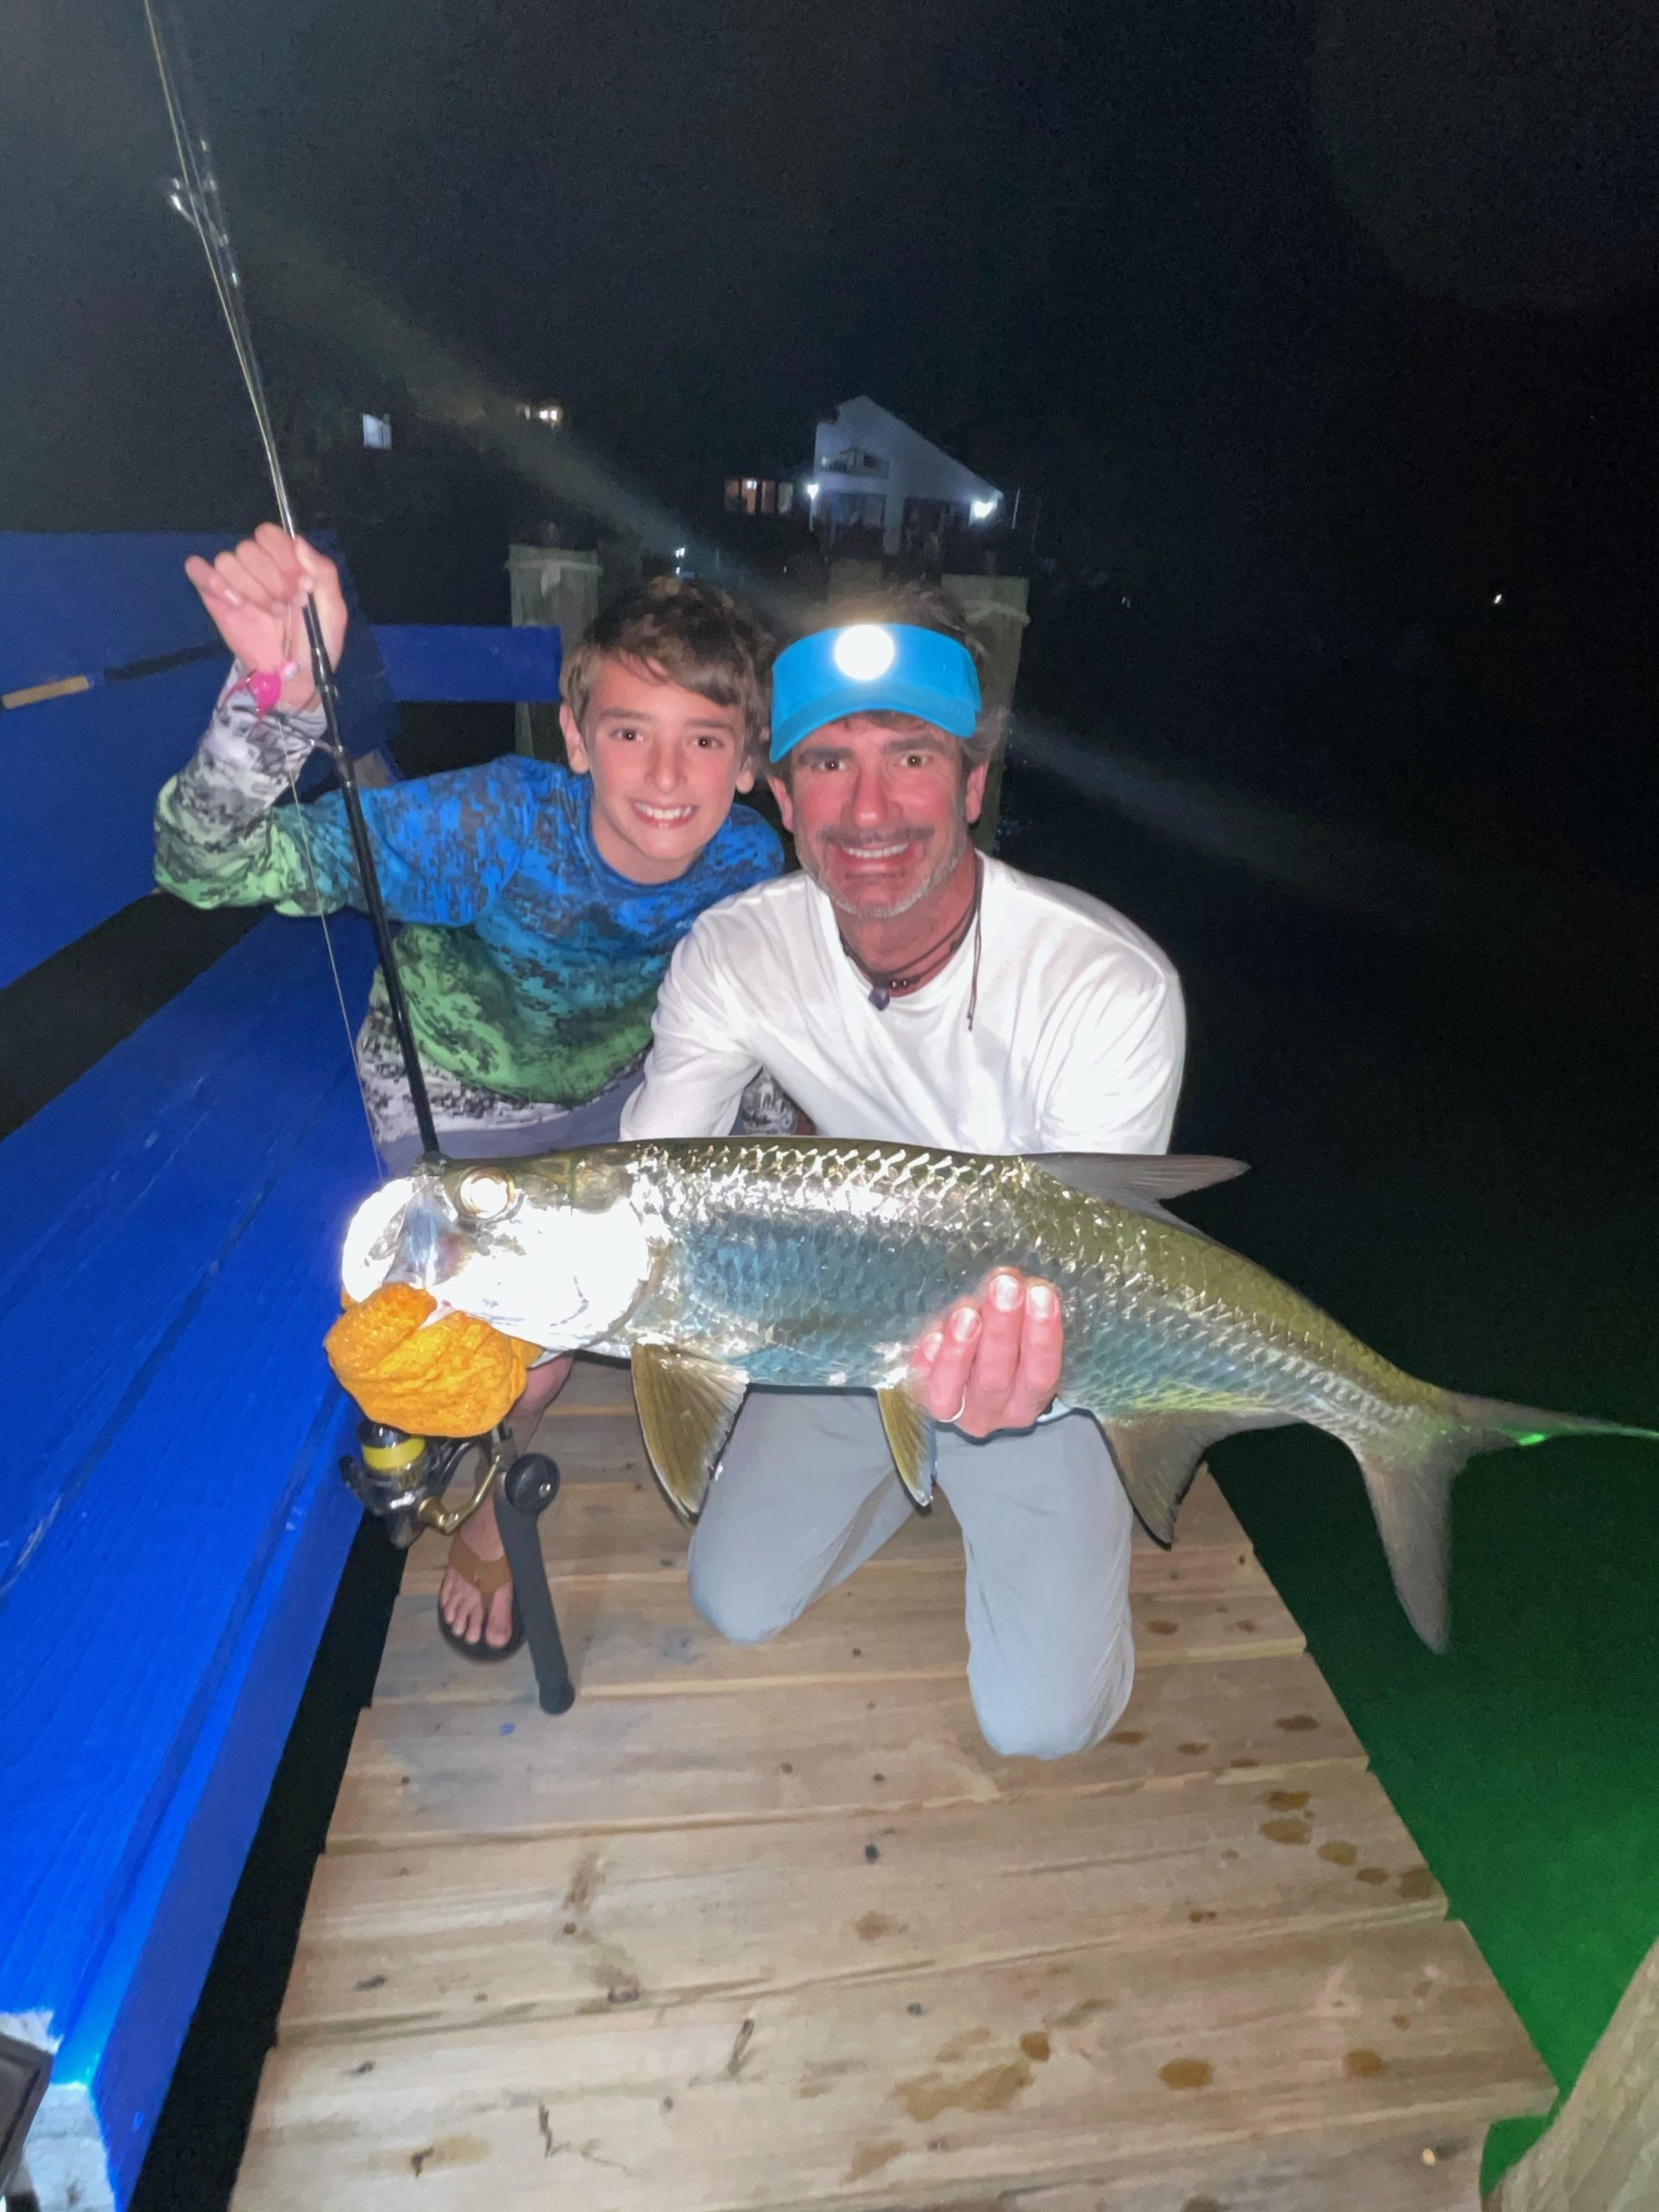 Joe and Taylor Baratta with a Florida Keys tarpon they caught from shore while on vacation last month.